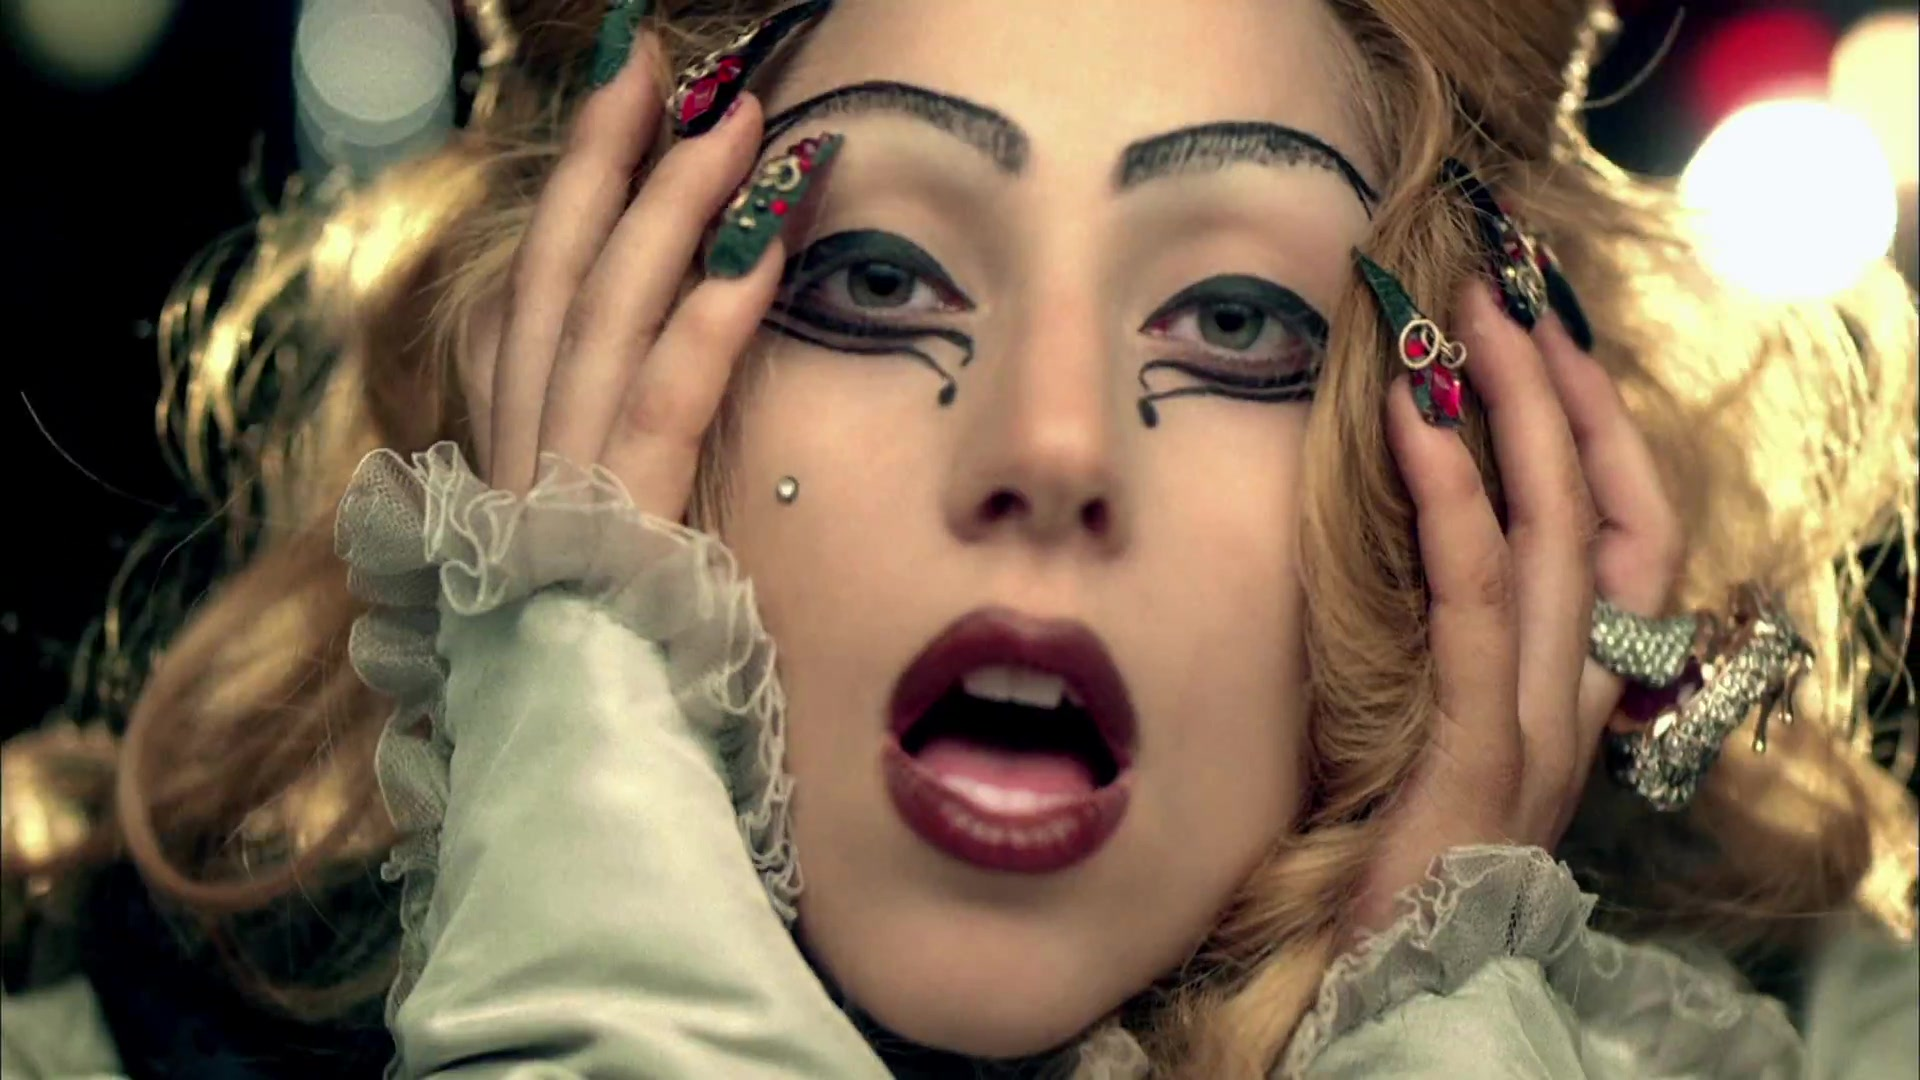 File:Lady Gaga - Judas 302.jpg